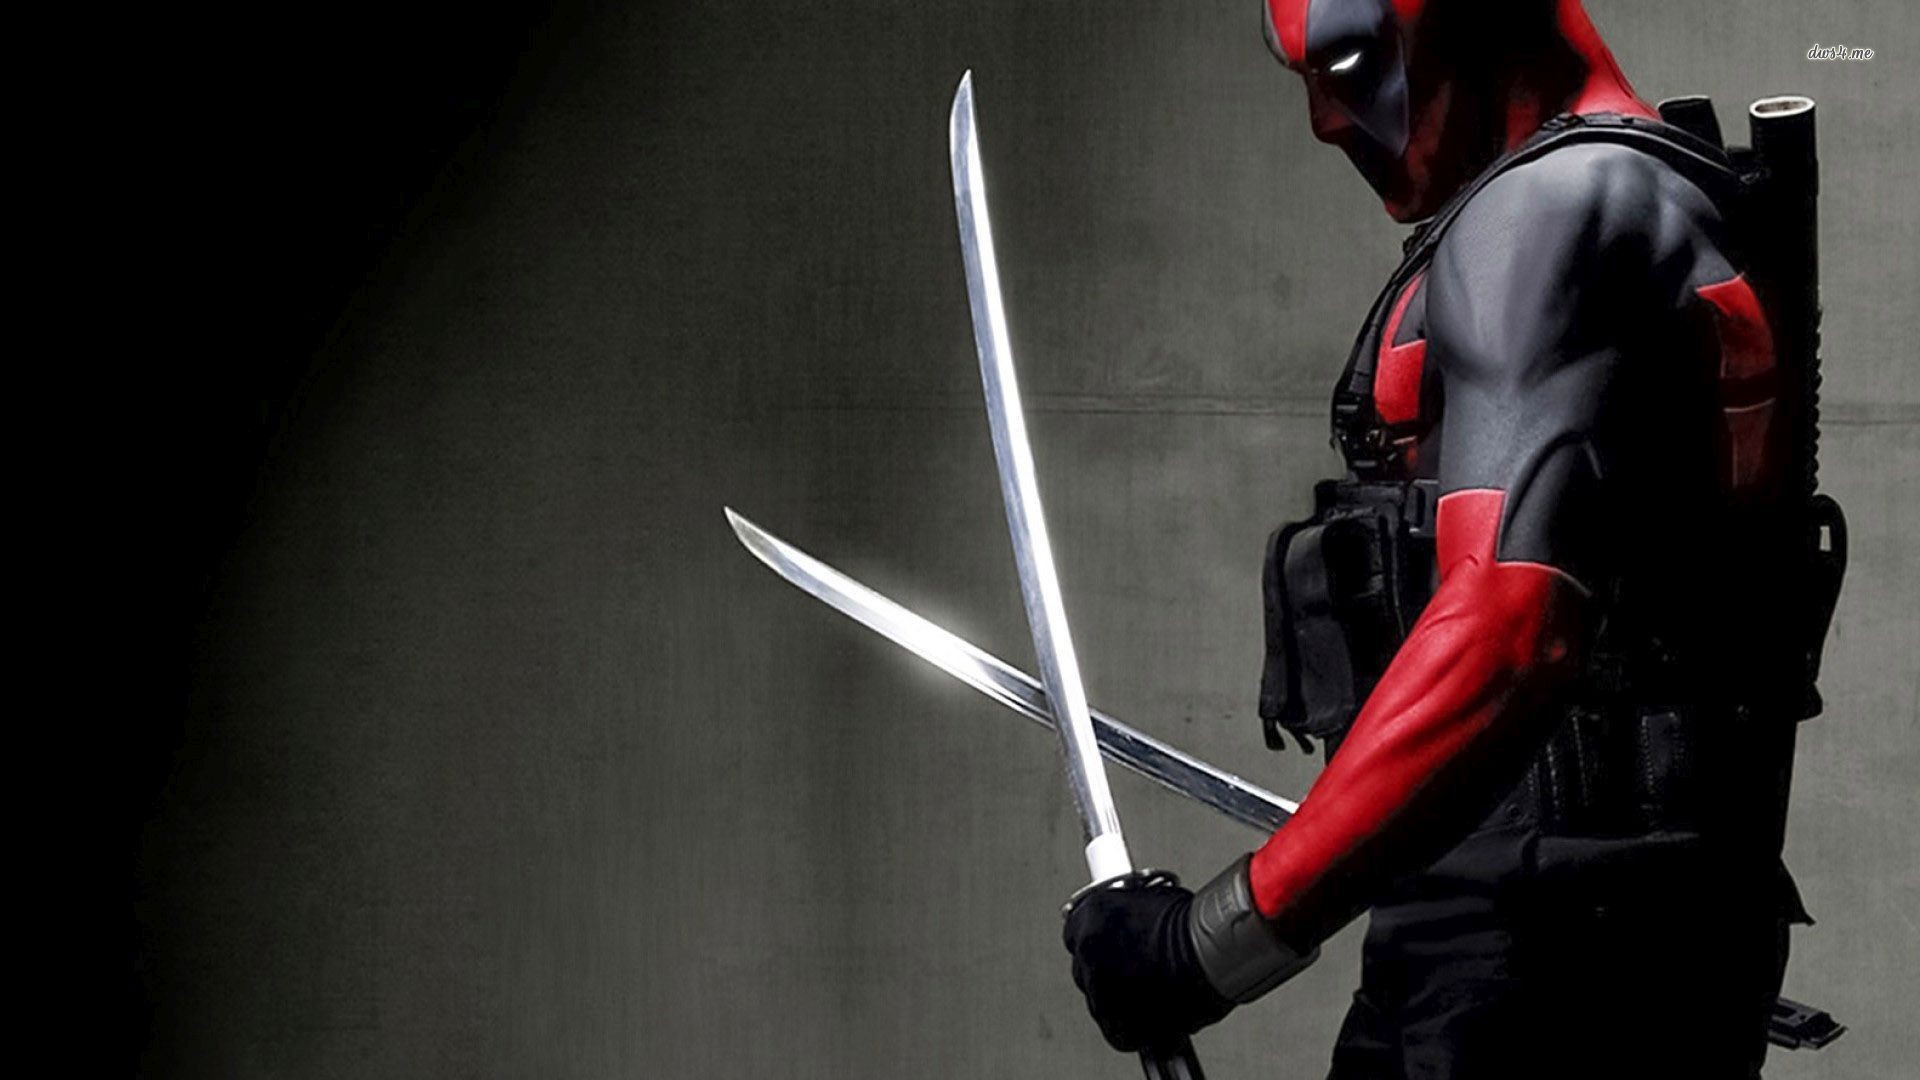 1920x1080  Deadpool wallpaper 1280x800 Deadpool wallpaper 1366x768 Deadpool .